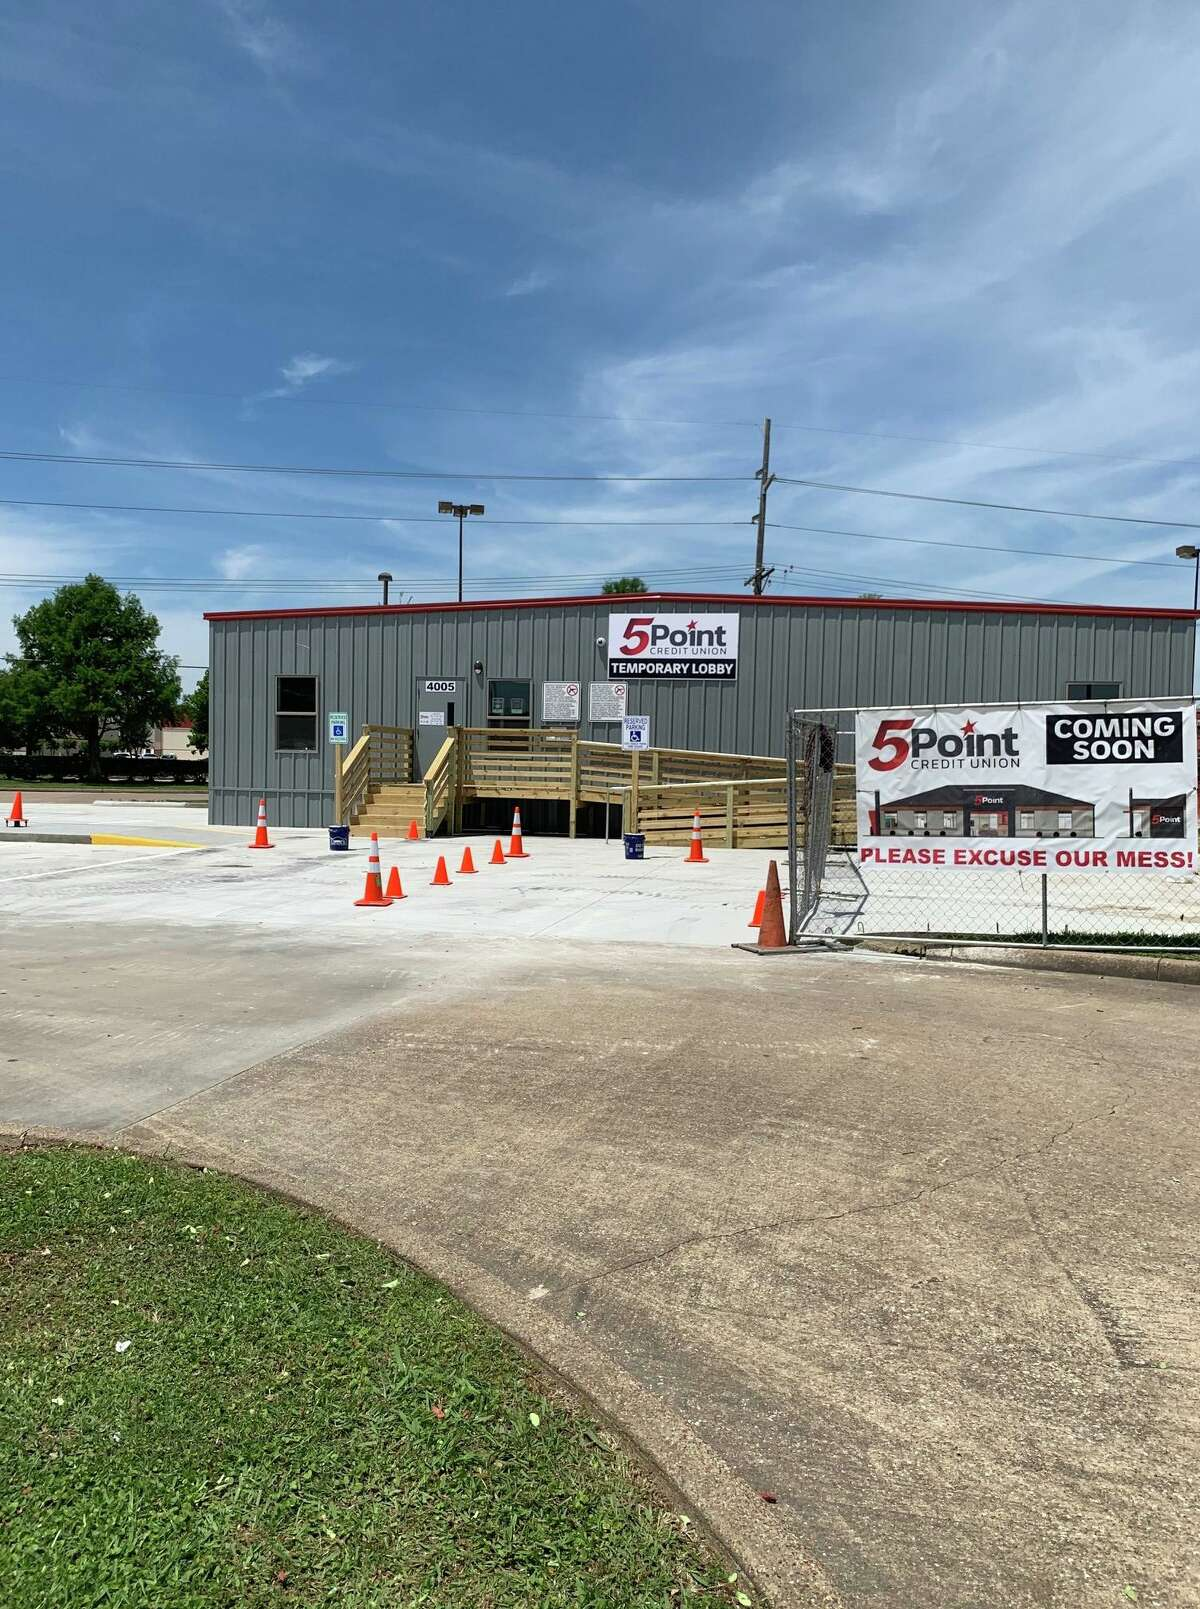 5Point Credit Union has moved it Beaumont branch into a temporary building while it undergoes a remodel.